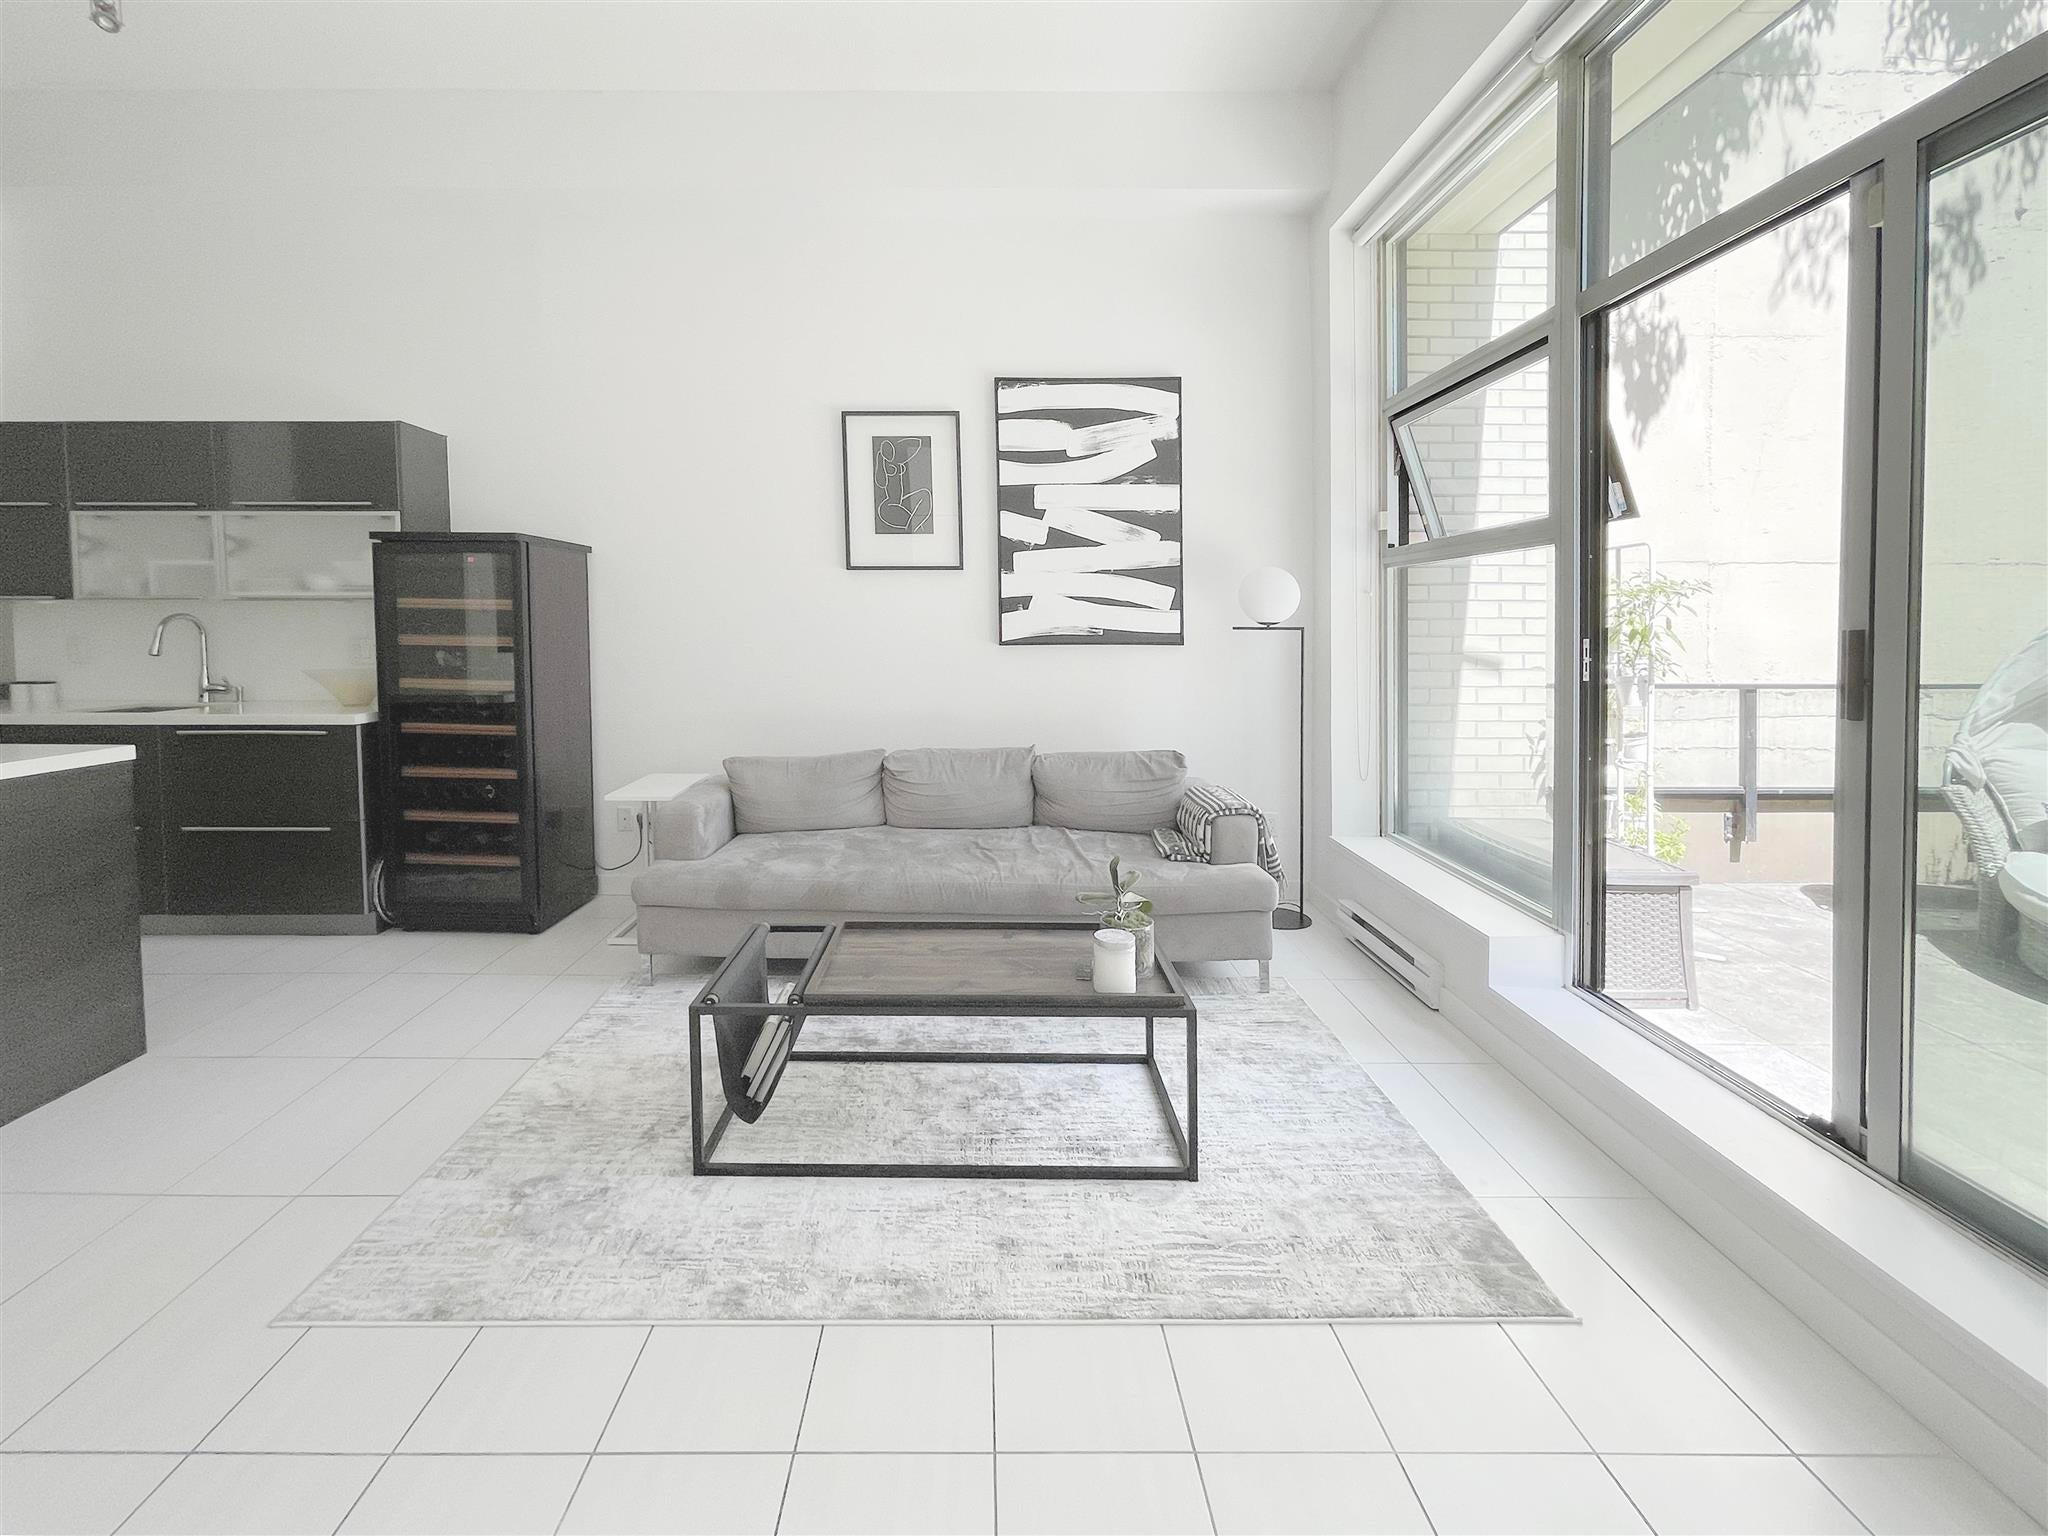 101 1252 HORNBY STREET - Downtown VW Apartment/Condo for sale, 1 Bedroom (R2604180) - #4